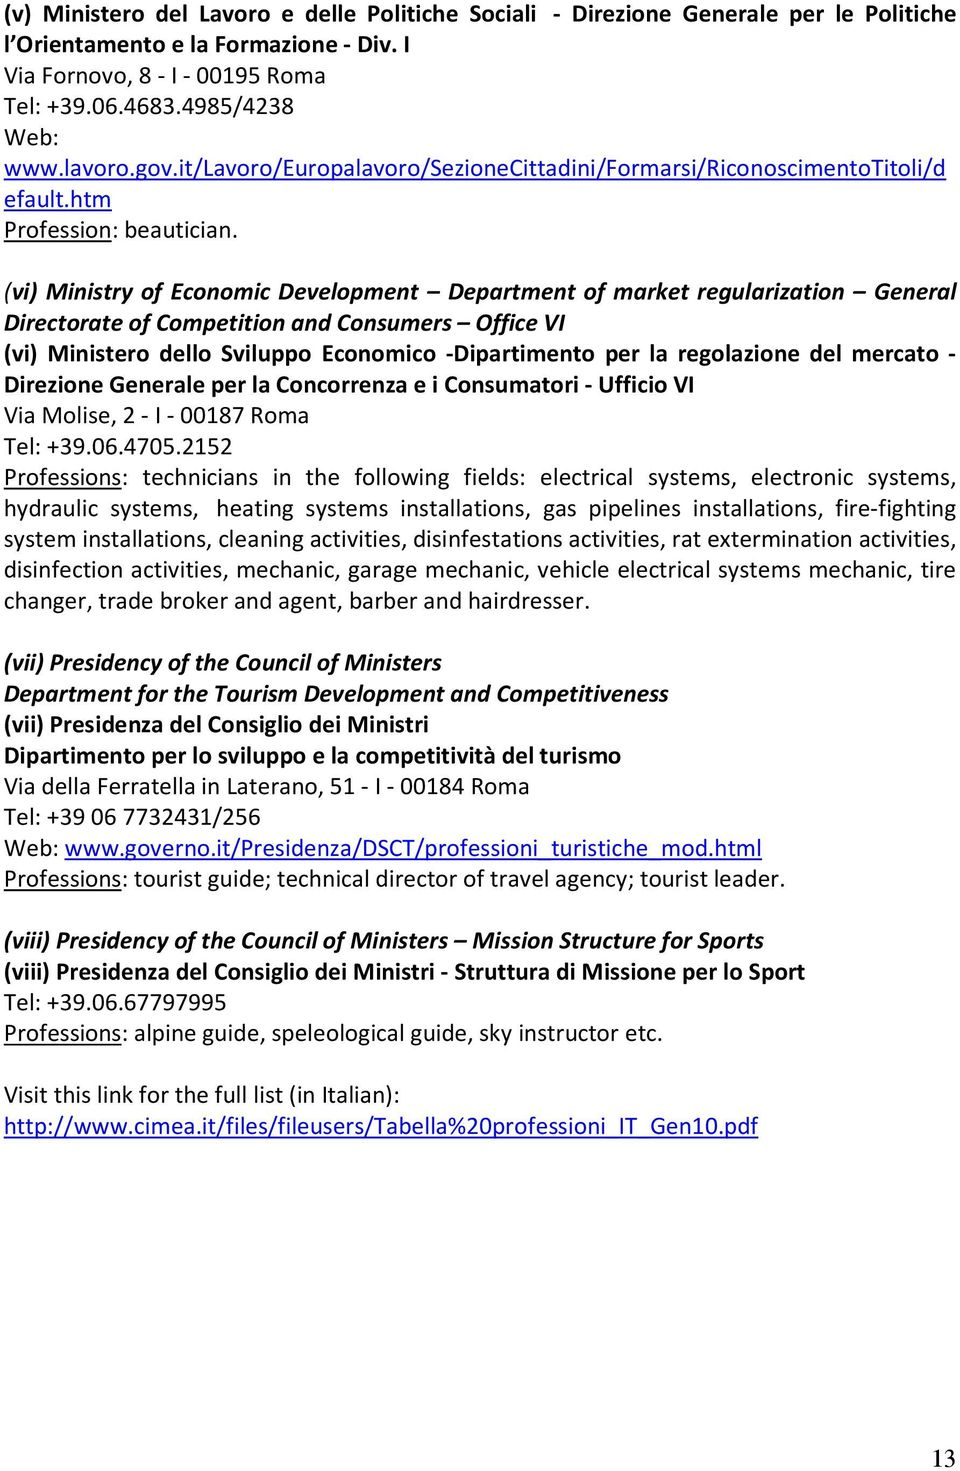 (vi) Ministry of Economic Development Department of market regularization General Directorate of Competition and Consumers Office VI (vi) Ministero dello Sviluppo Economico -Dipartimento per la